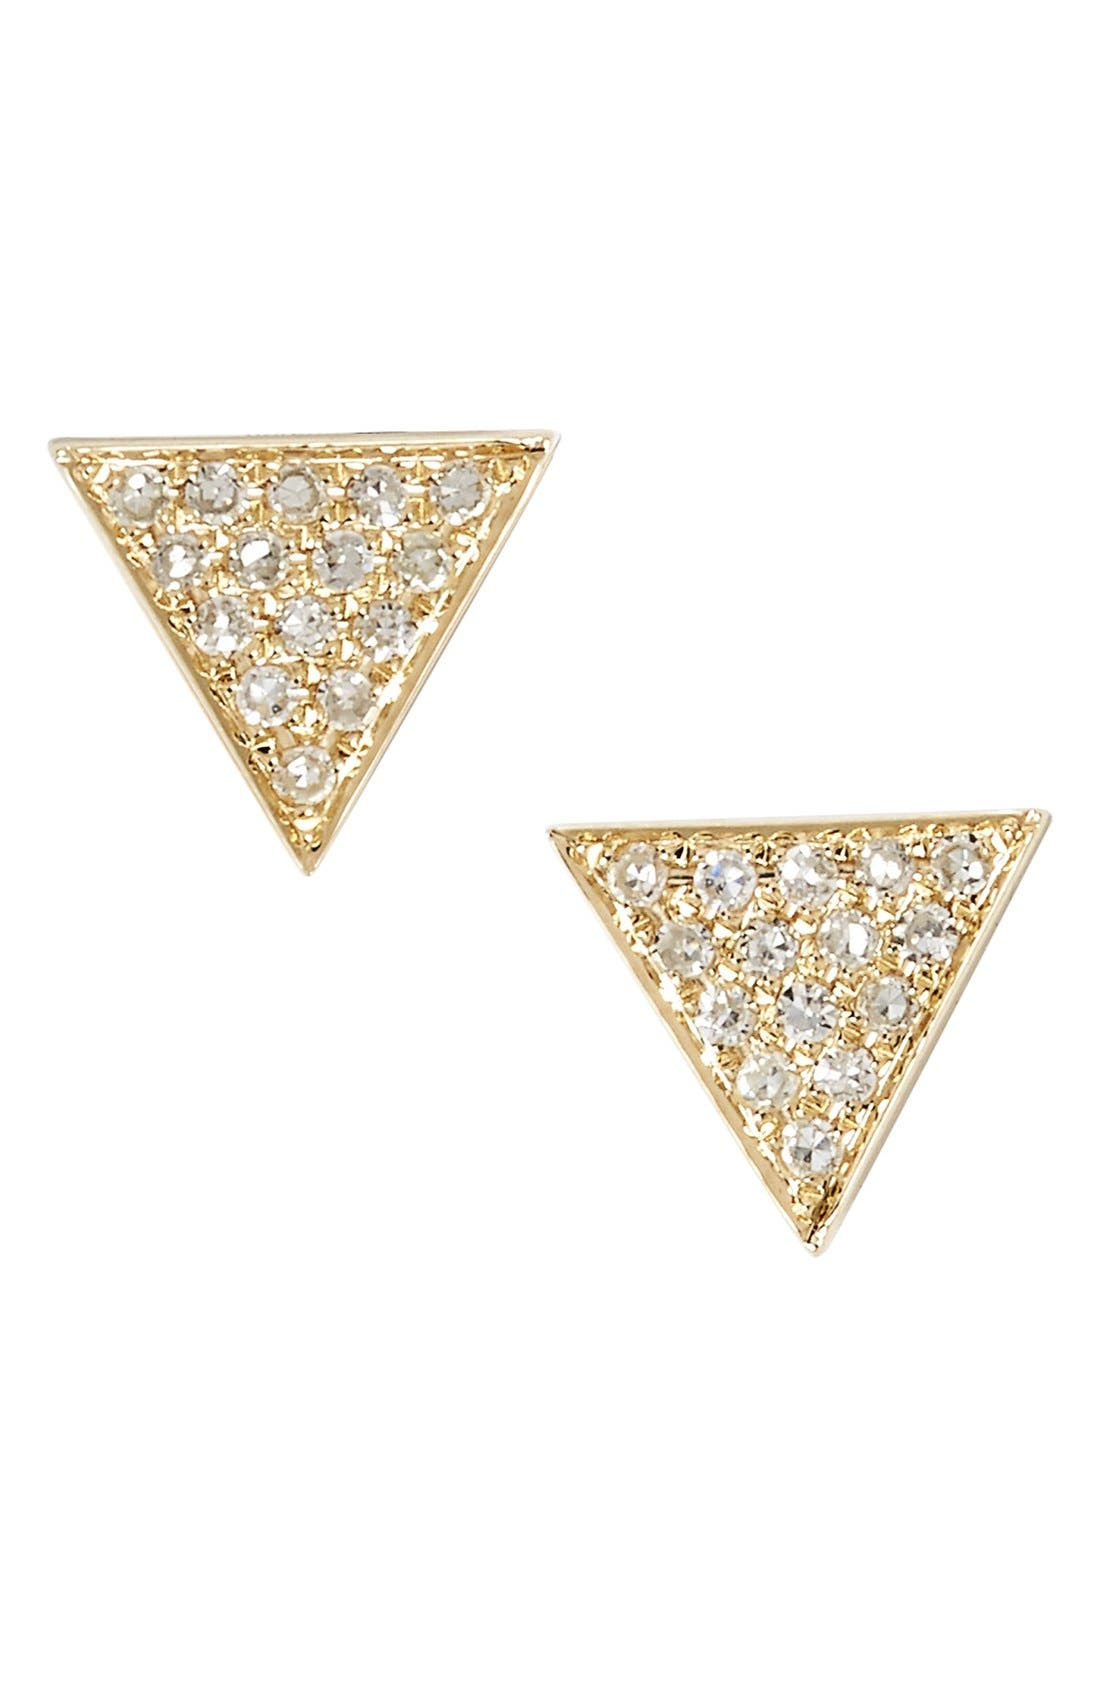 Main Image - Dana Rebecca Designs 'Emily Sarah' Diamond Pavé Triangle Stud Earrings (Nordstrom Exclusive)